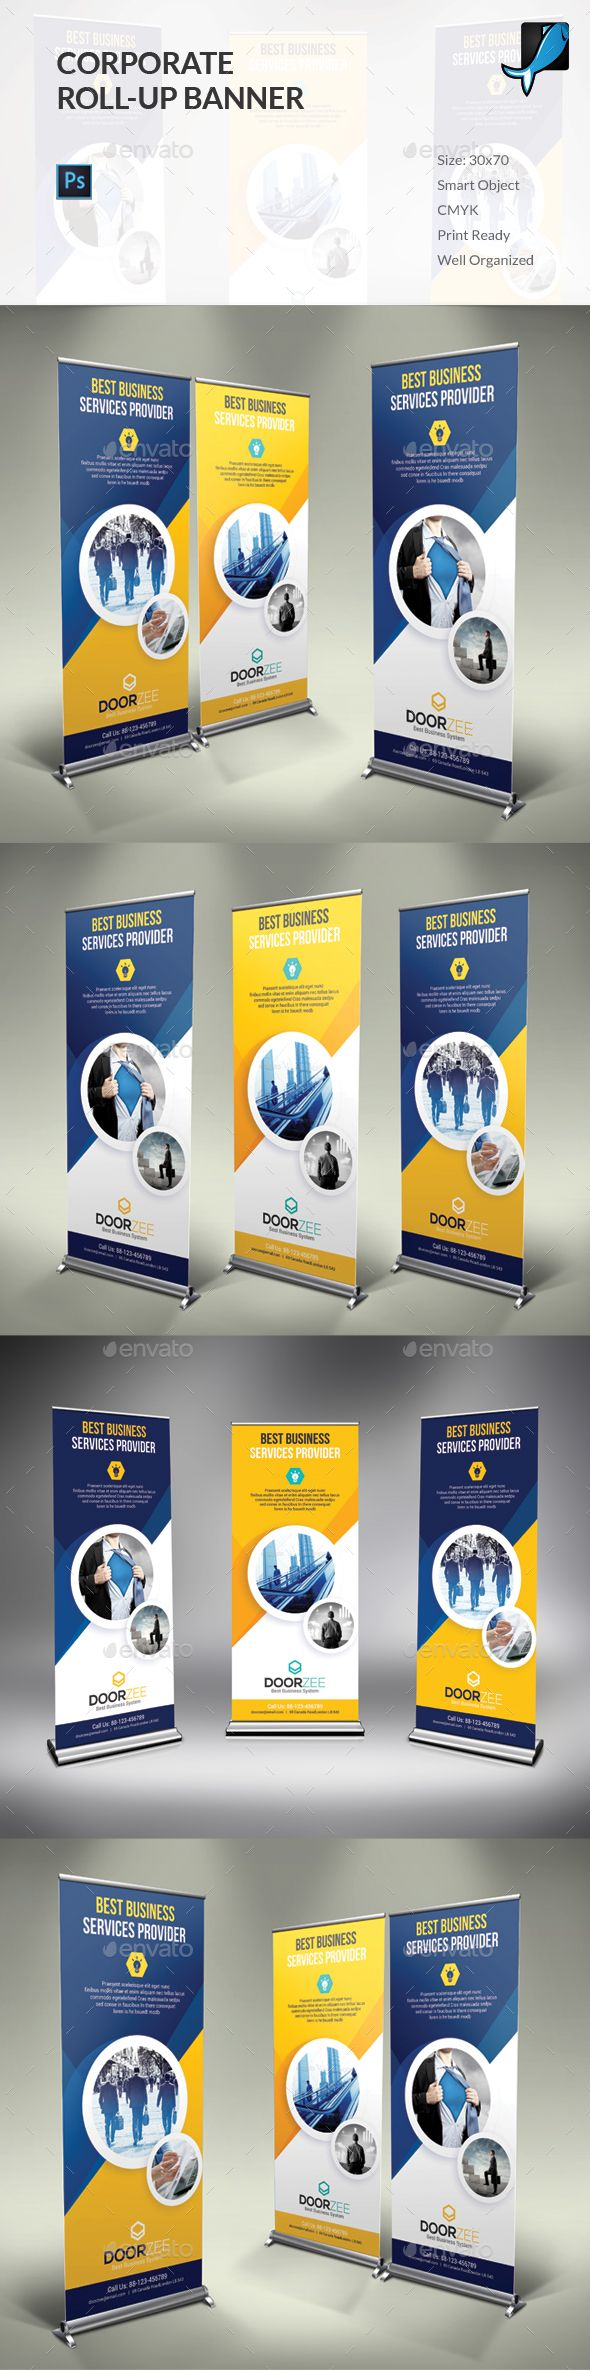 Banner Design Ideas best web banner design inspiration plush beds banner design Corporate Rollup Banner